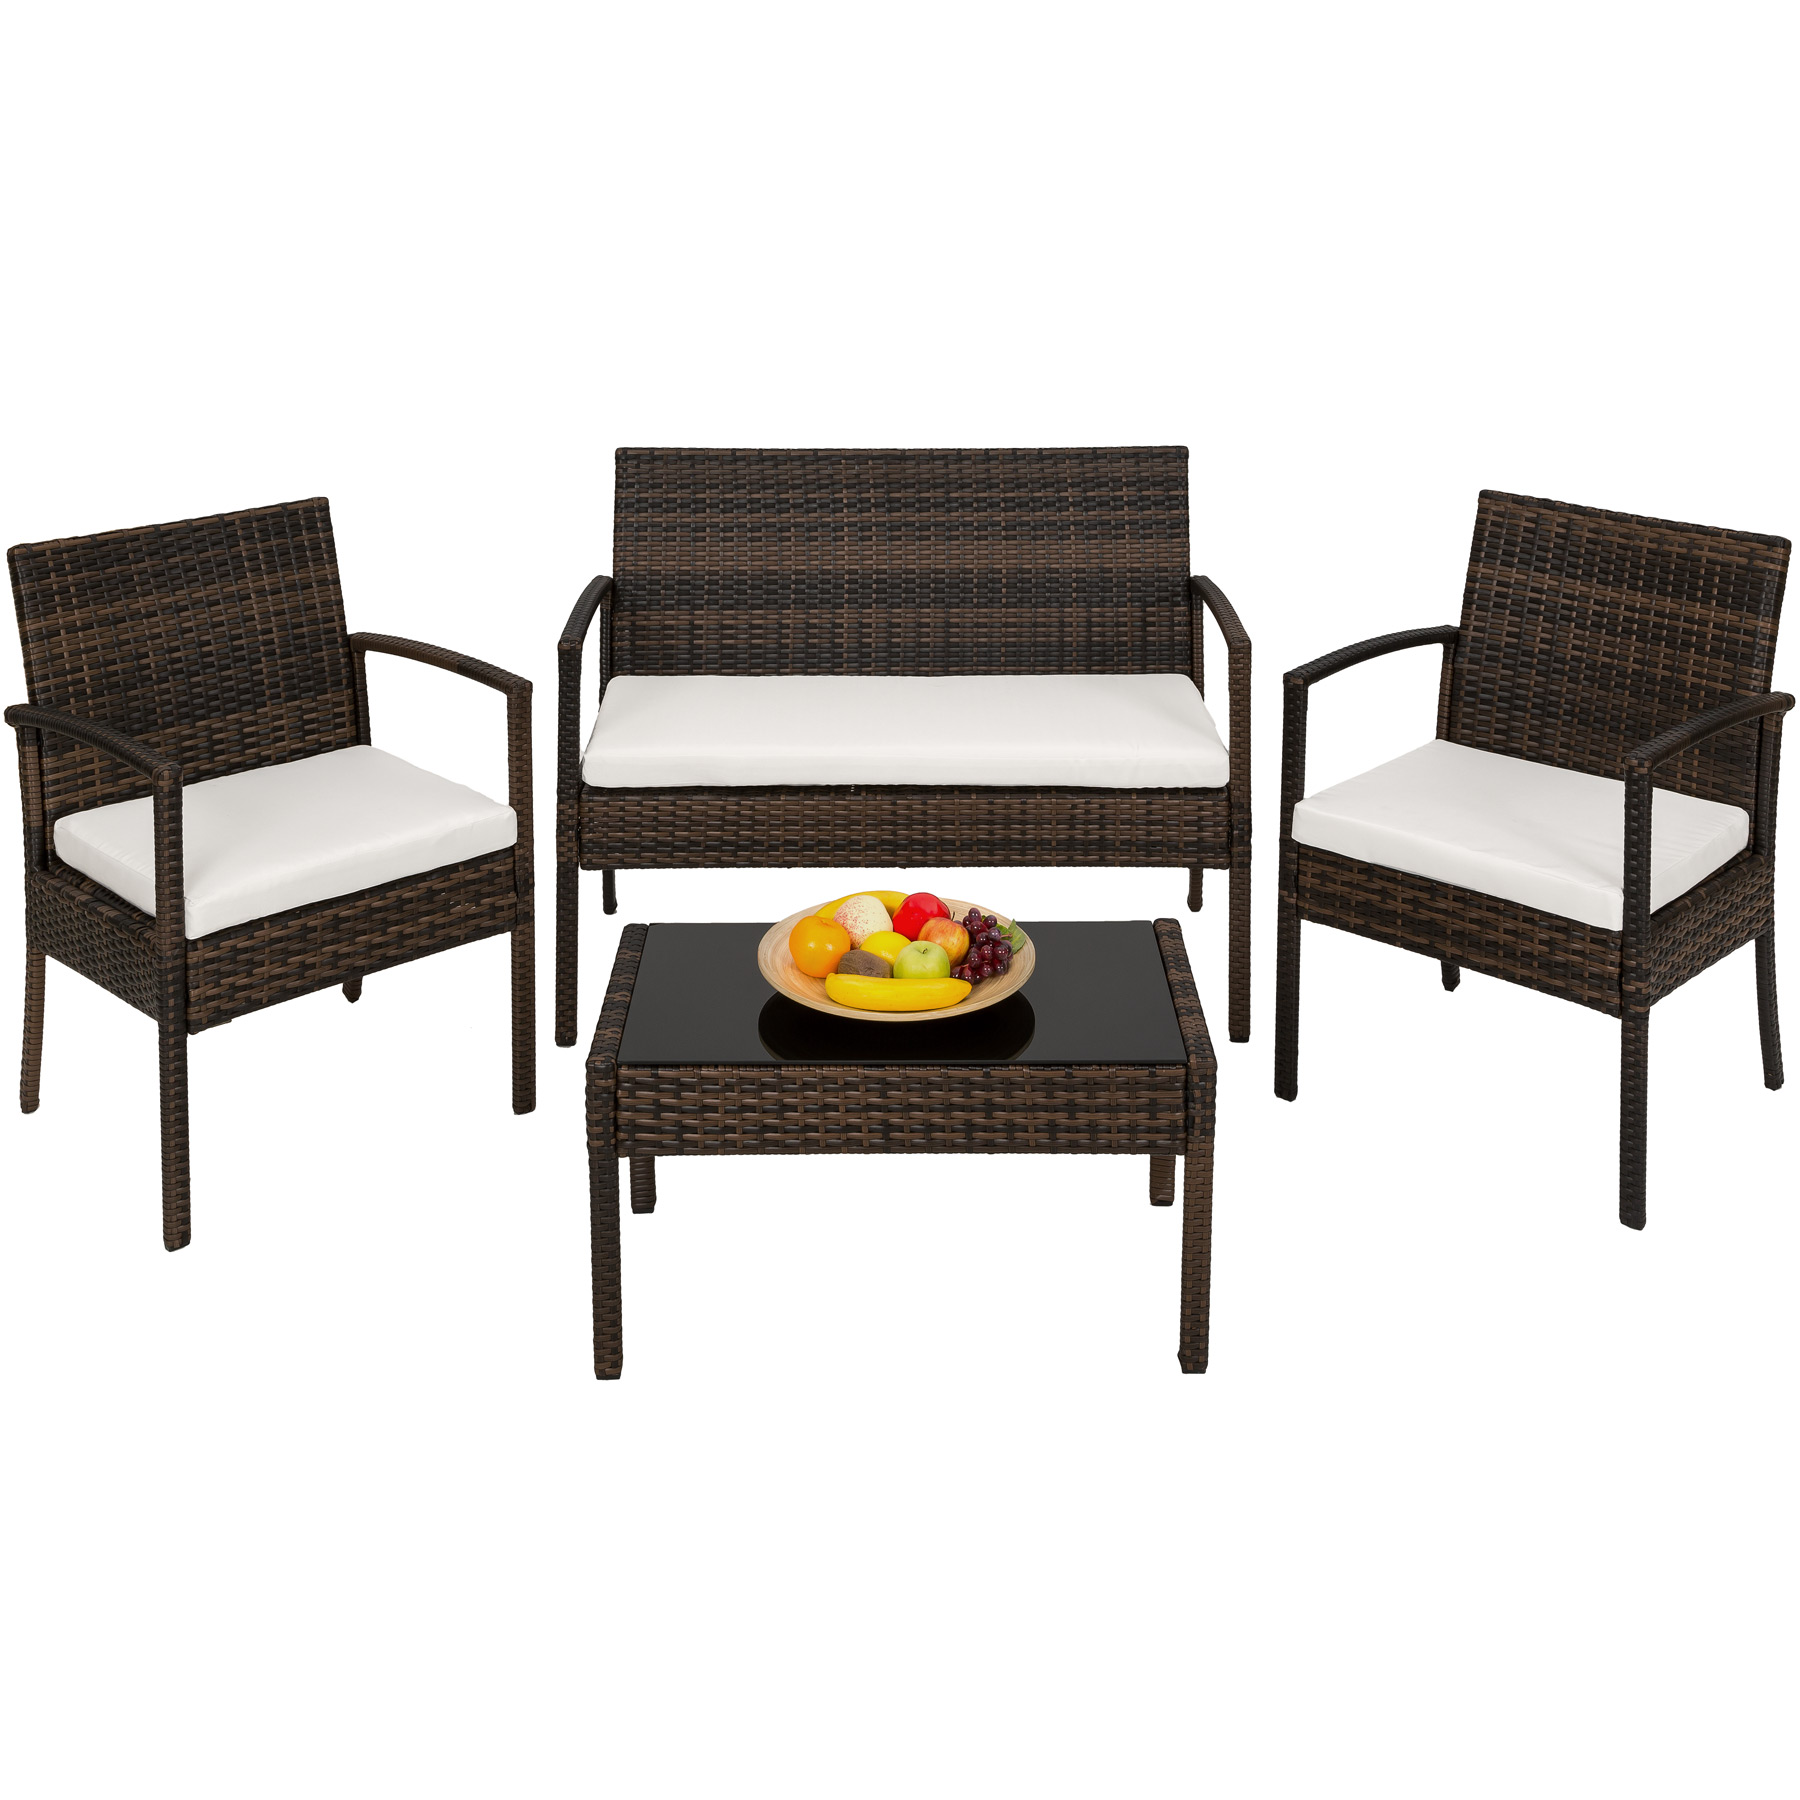 2 chairs and table rattan childrens desk chair john lewis poly garden furniture bench set